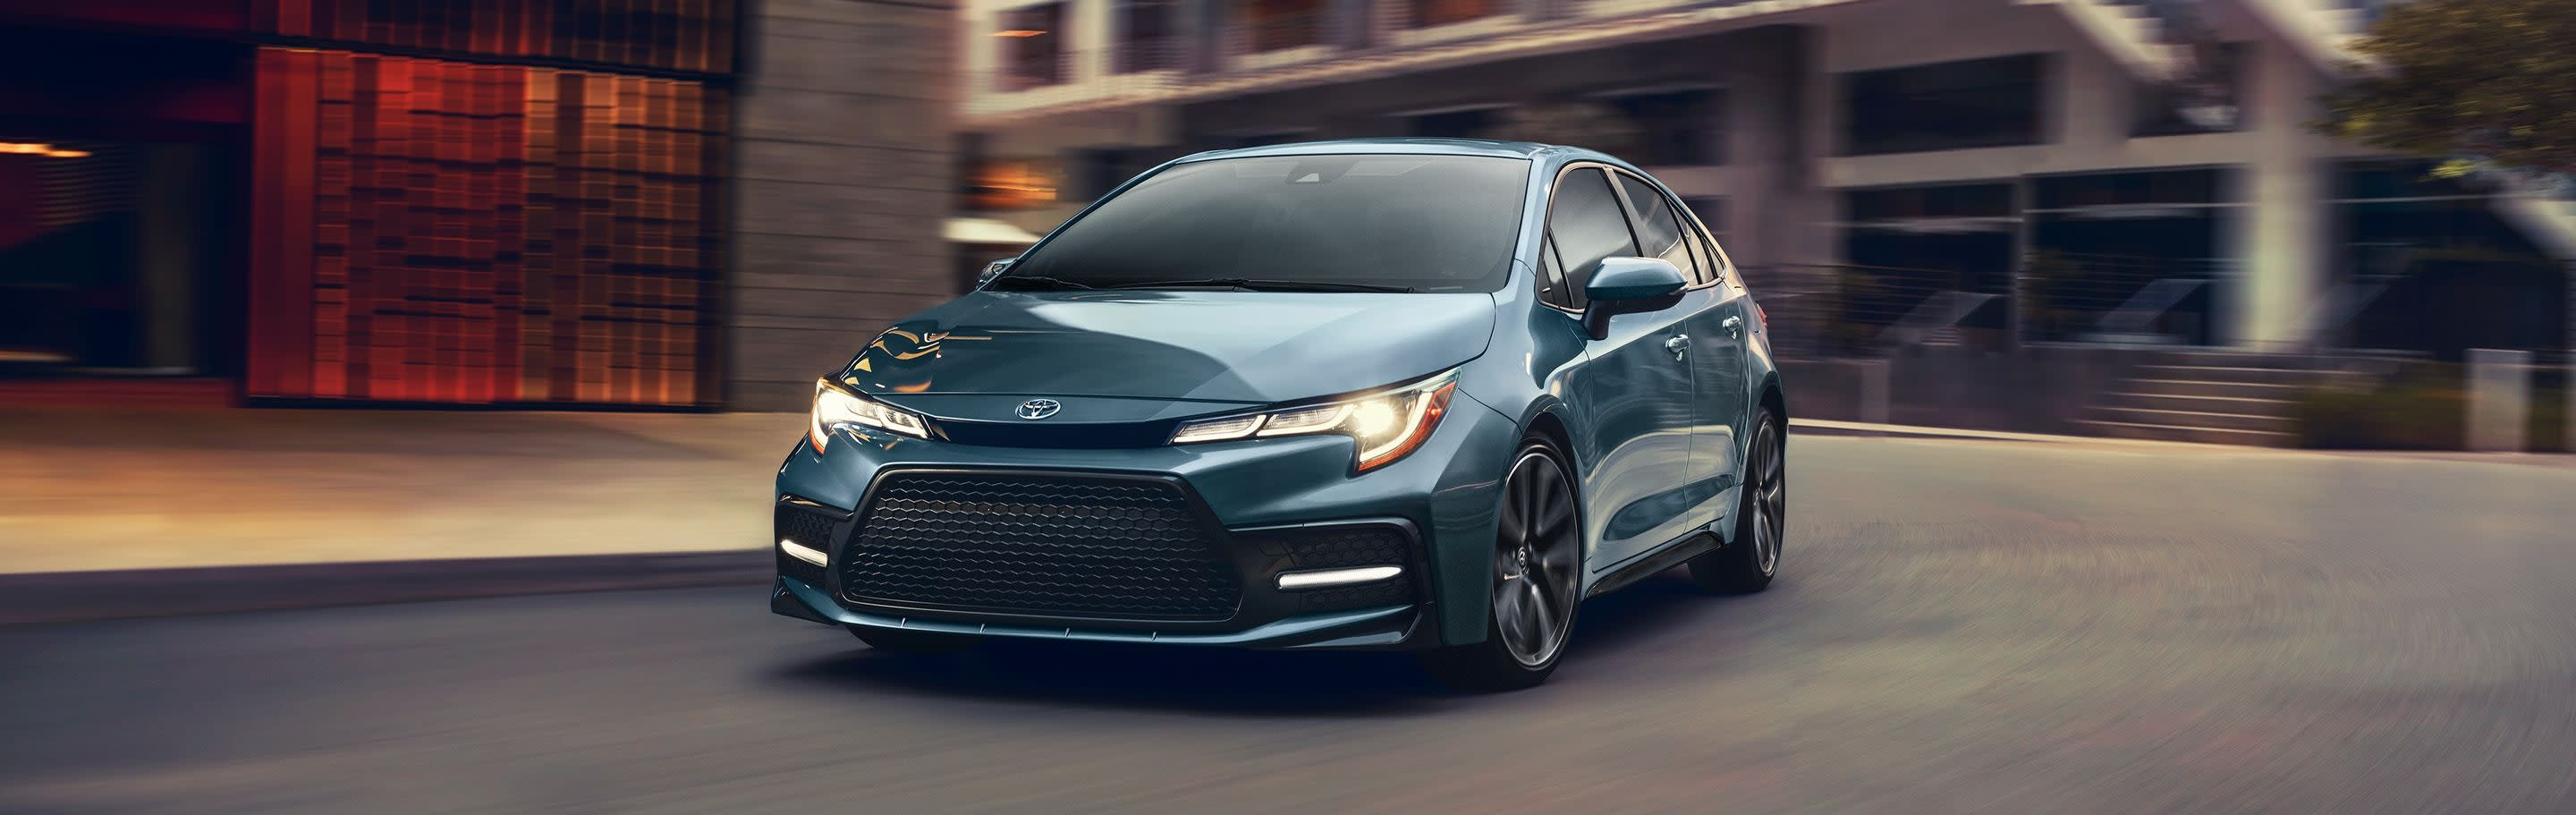 2020 Toyota Corolla for Sale near Bridgewater, NJ